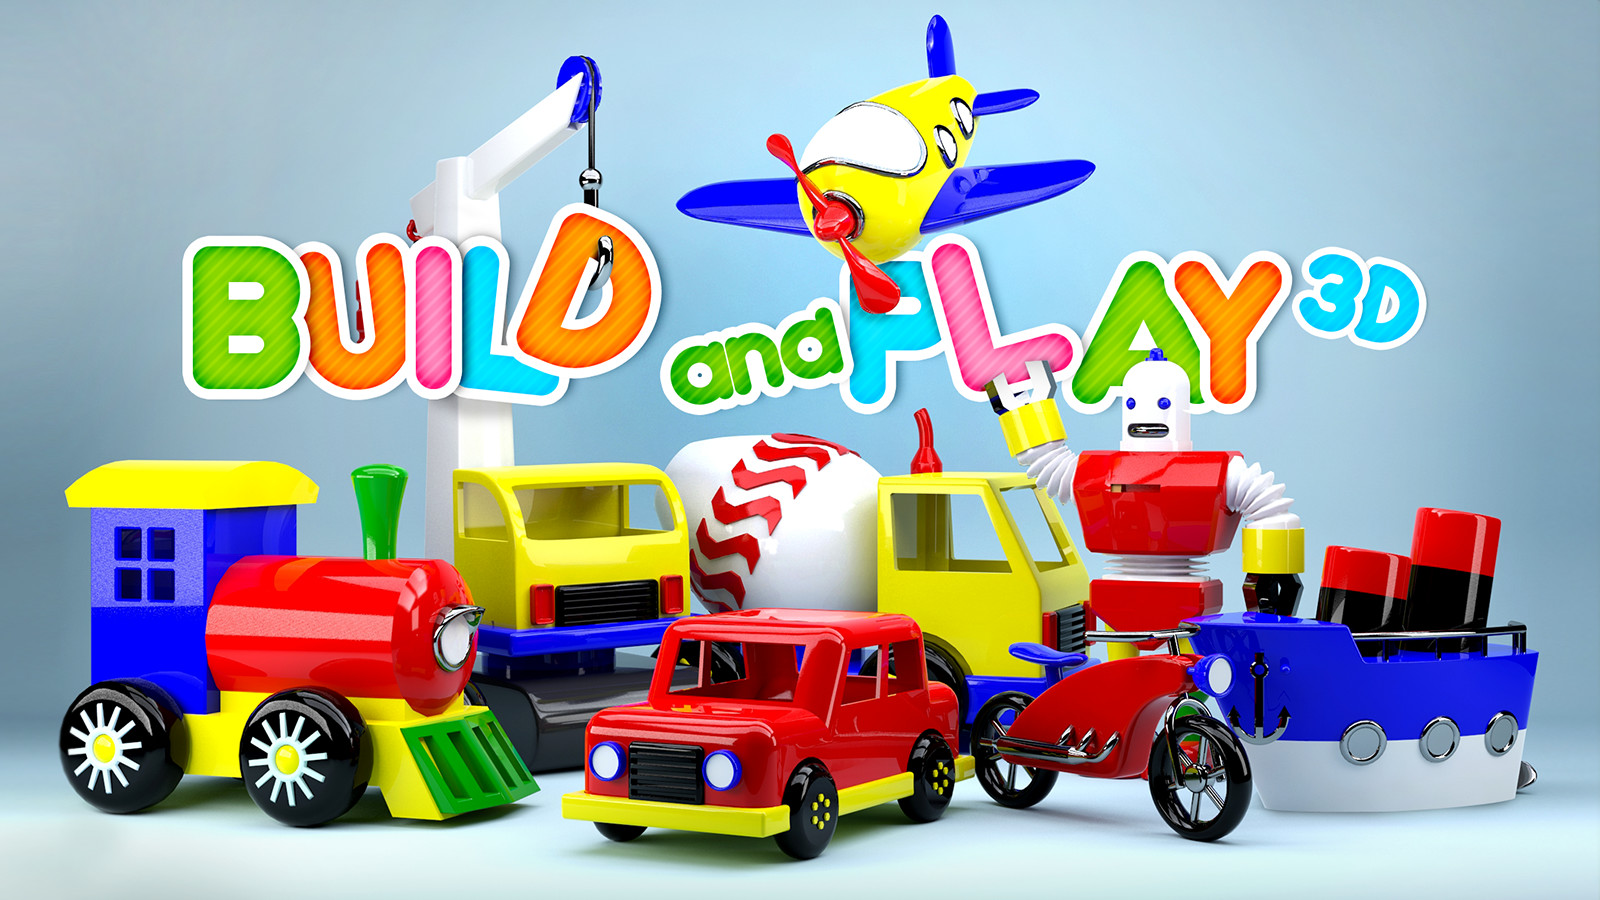 Play Video - Build and Play 3D